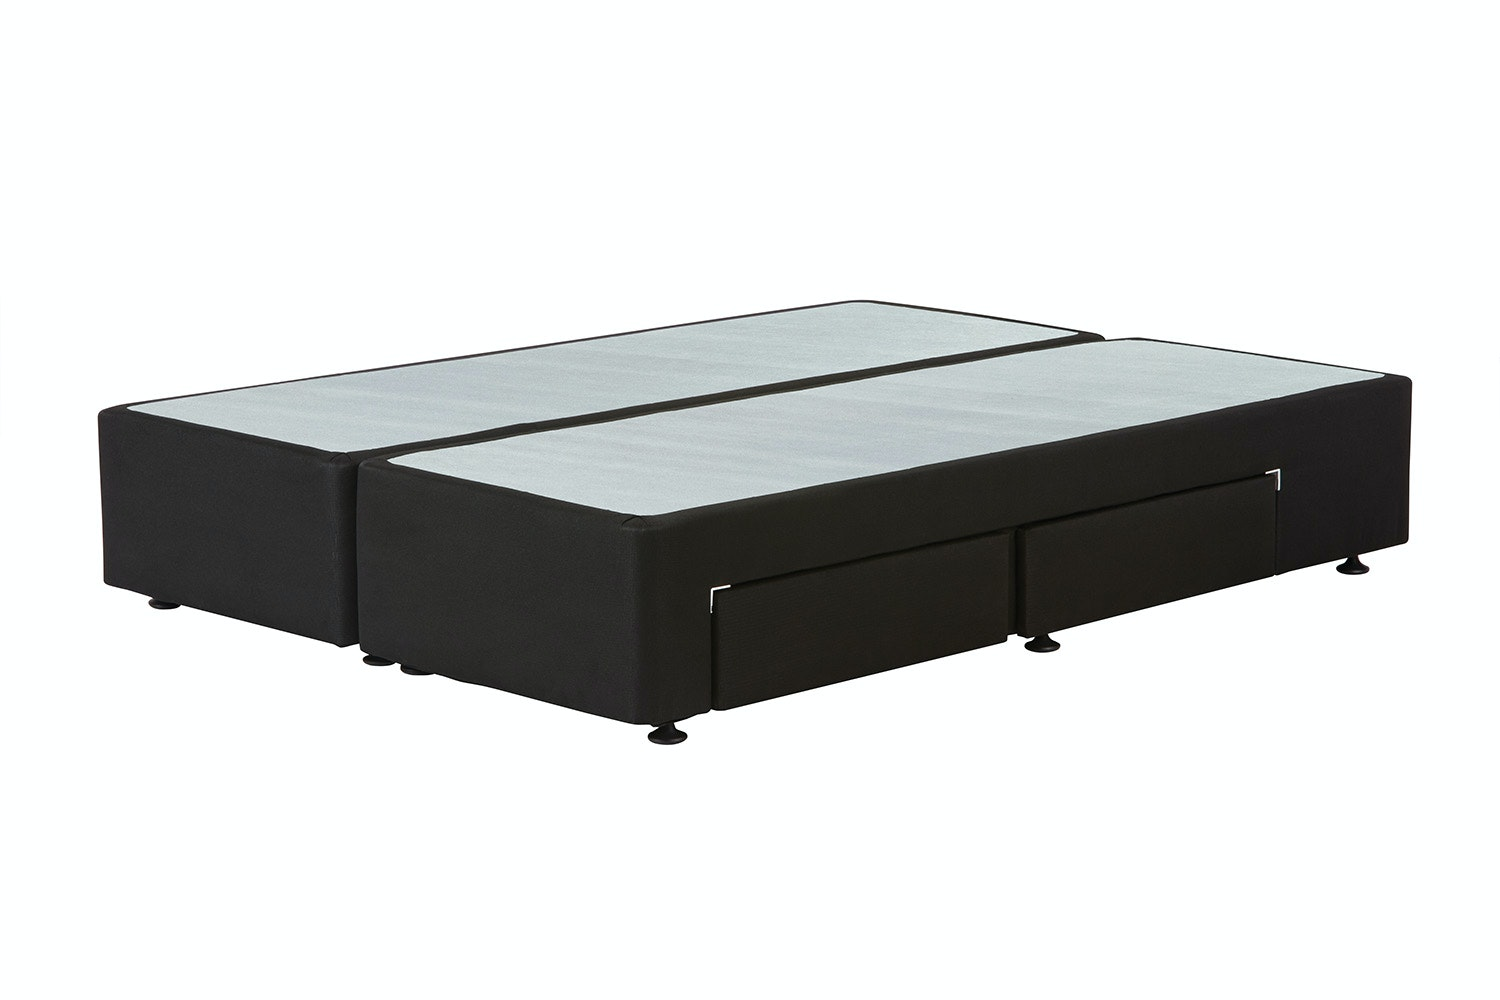 Infinity Queen 4 Drawer Storage Base by King Koil